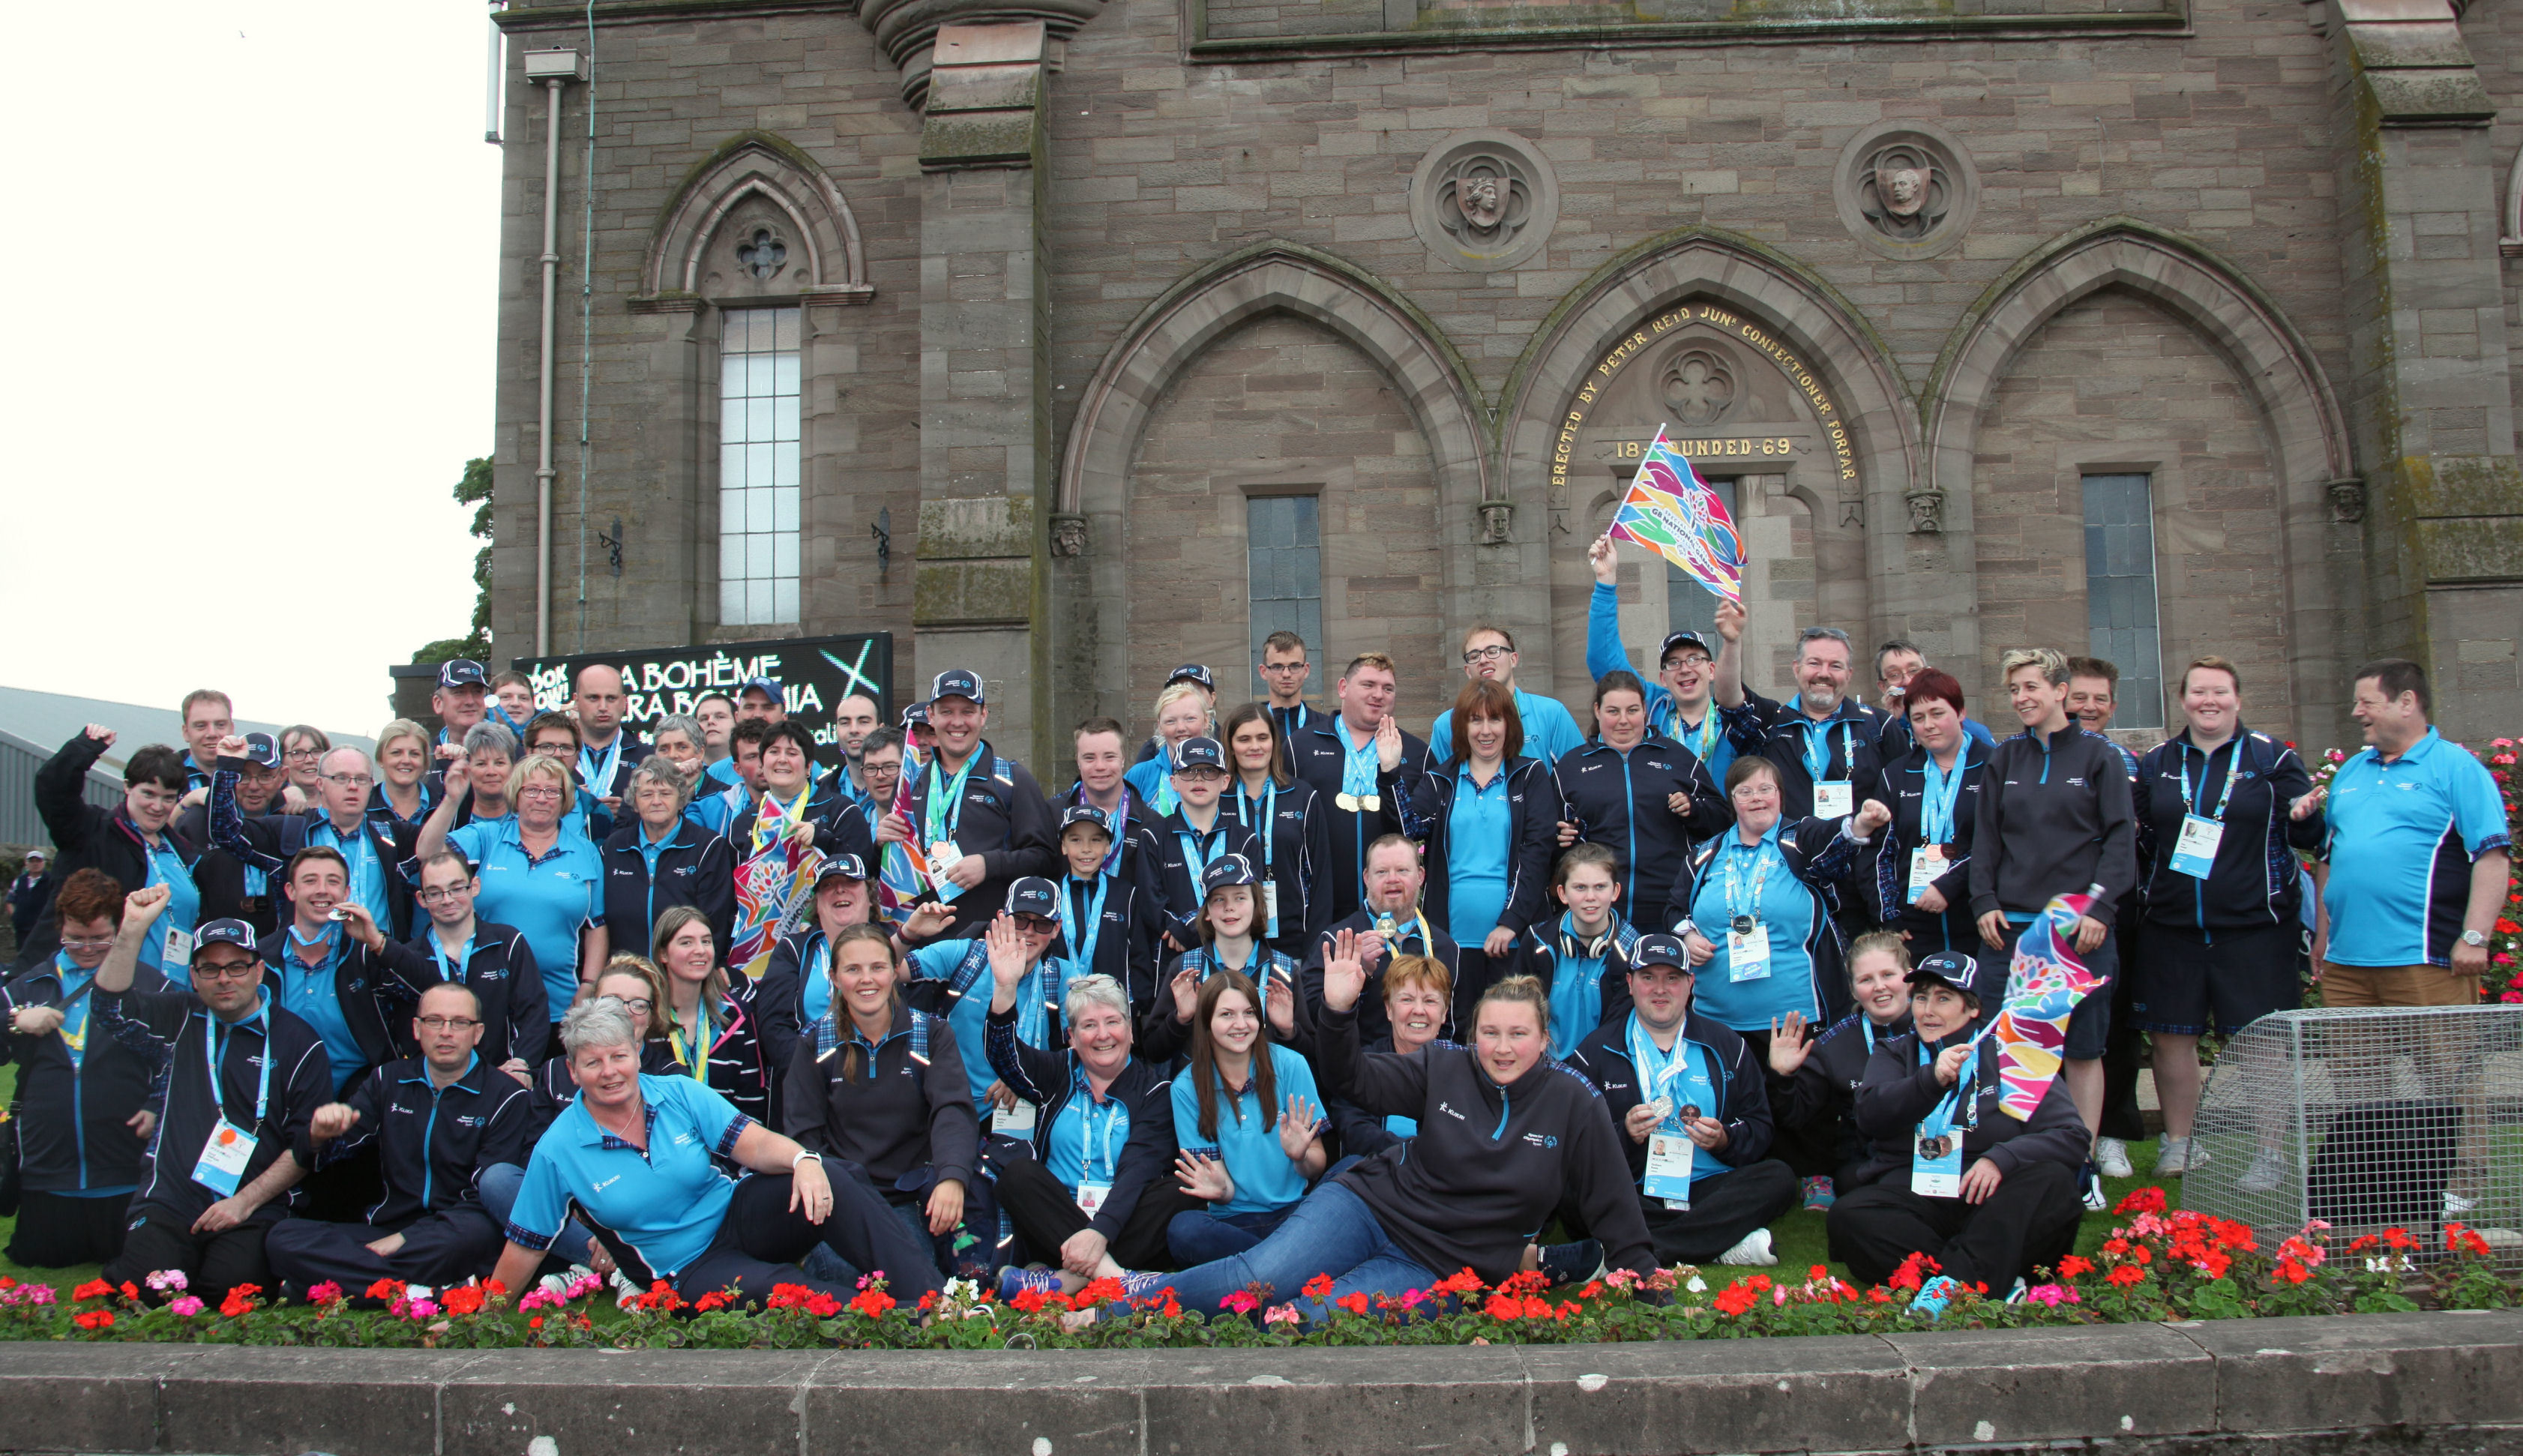 Some of the Tayside Special Olympics squad pictured outside Forfar's Reid Hall.